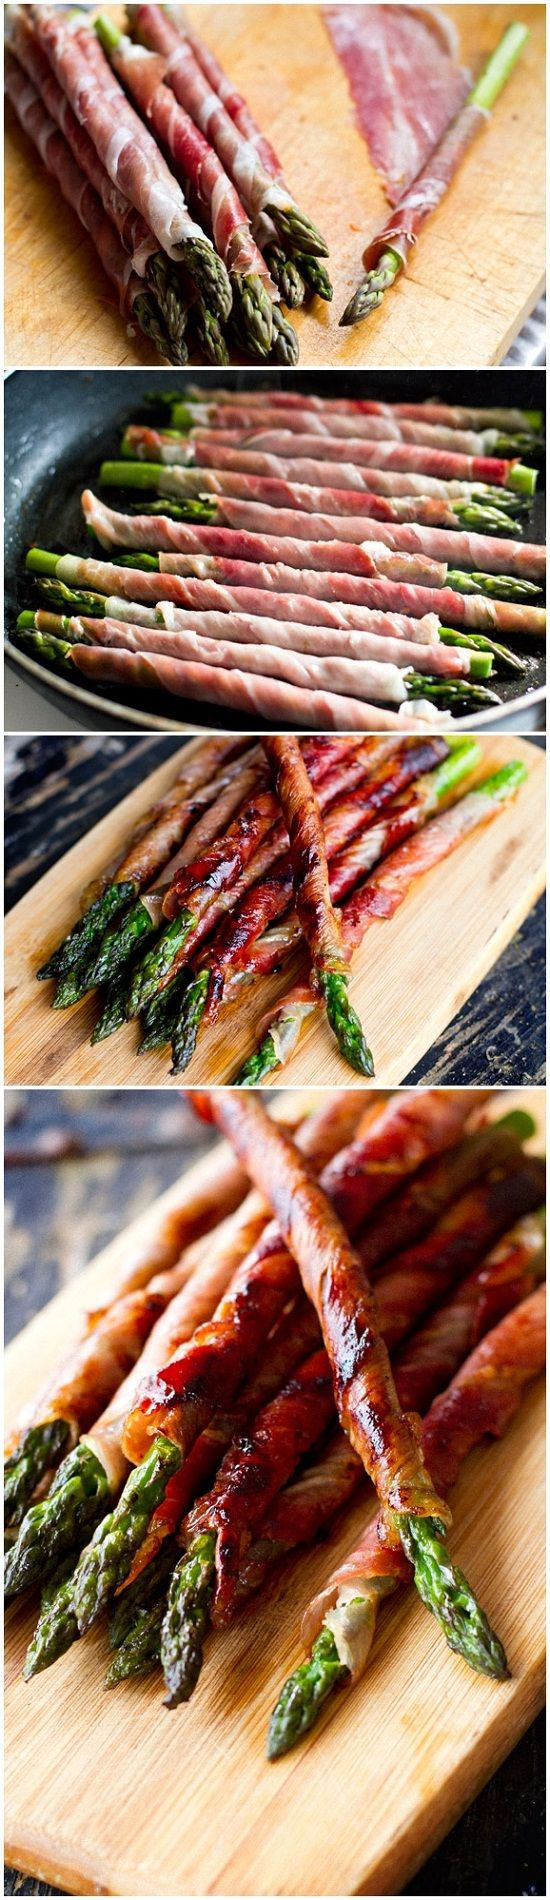 Prosciutto Wrapped Asparagus. Theses are so good!!!